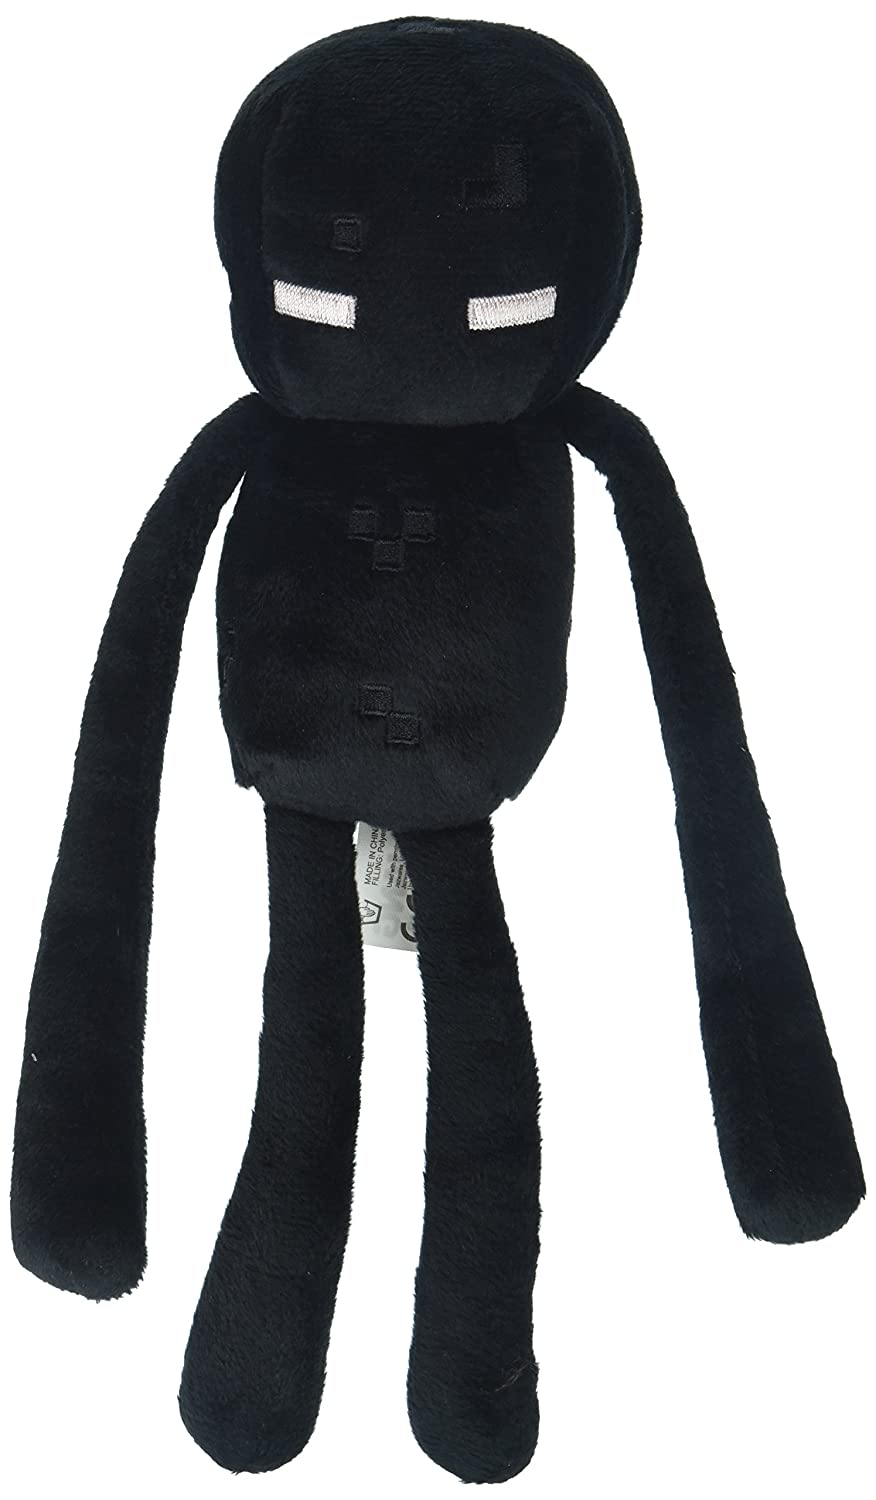 Minecraft 7-inch Enderman Soft Toy Character Options 16523